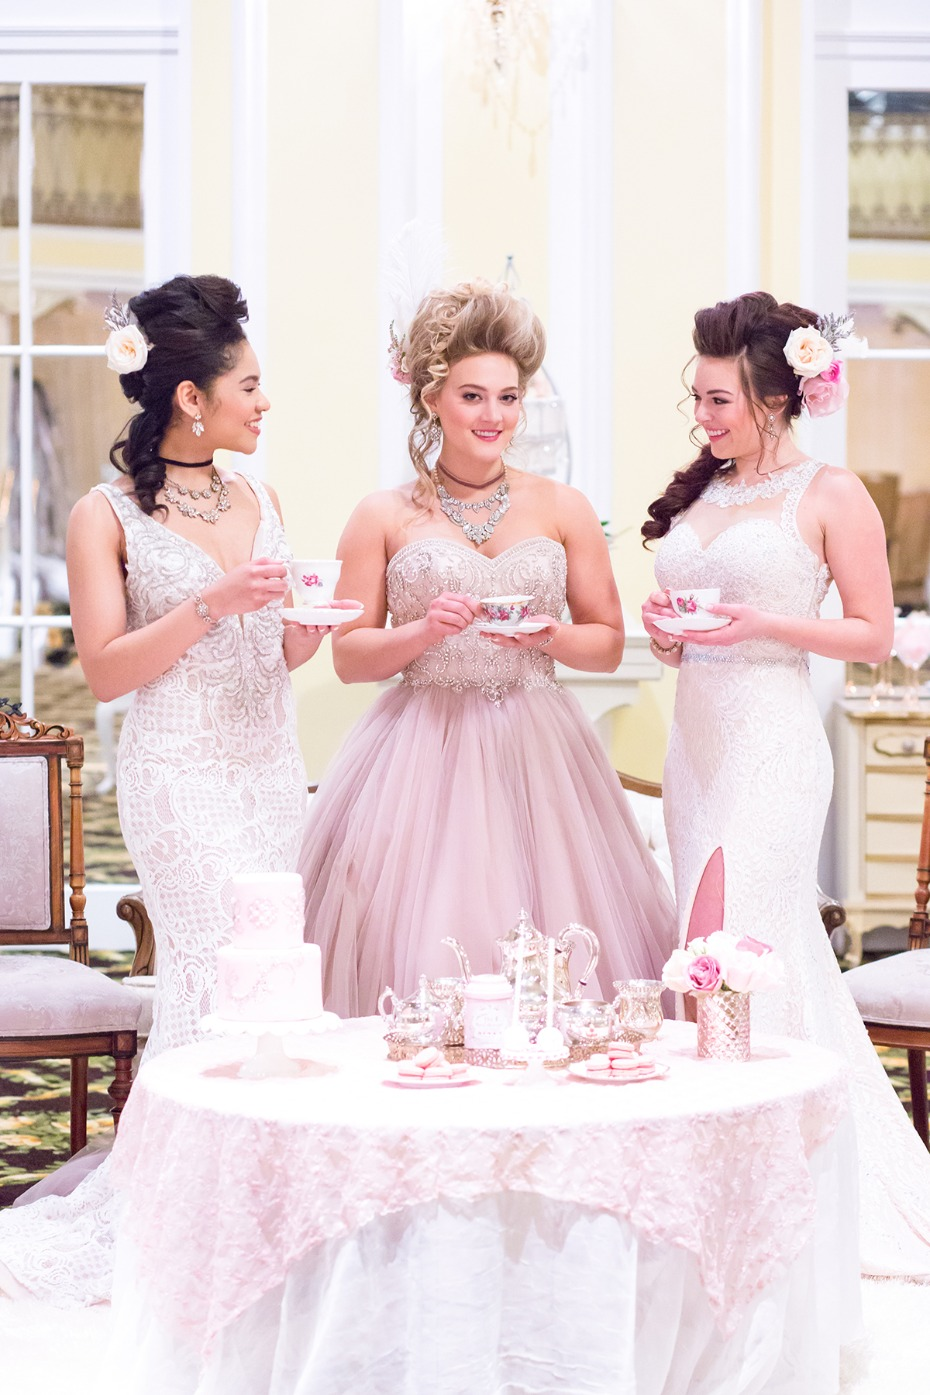 Marie Antoinette wedding ideas